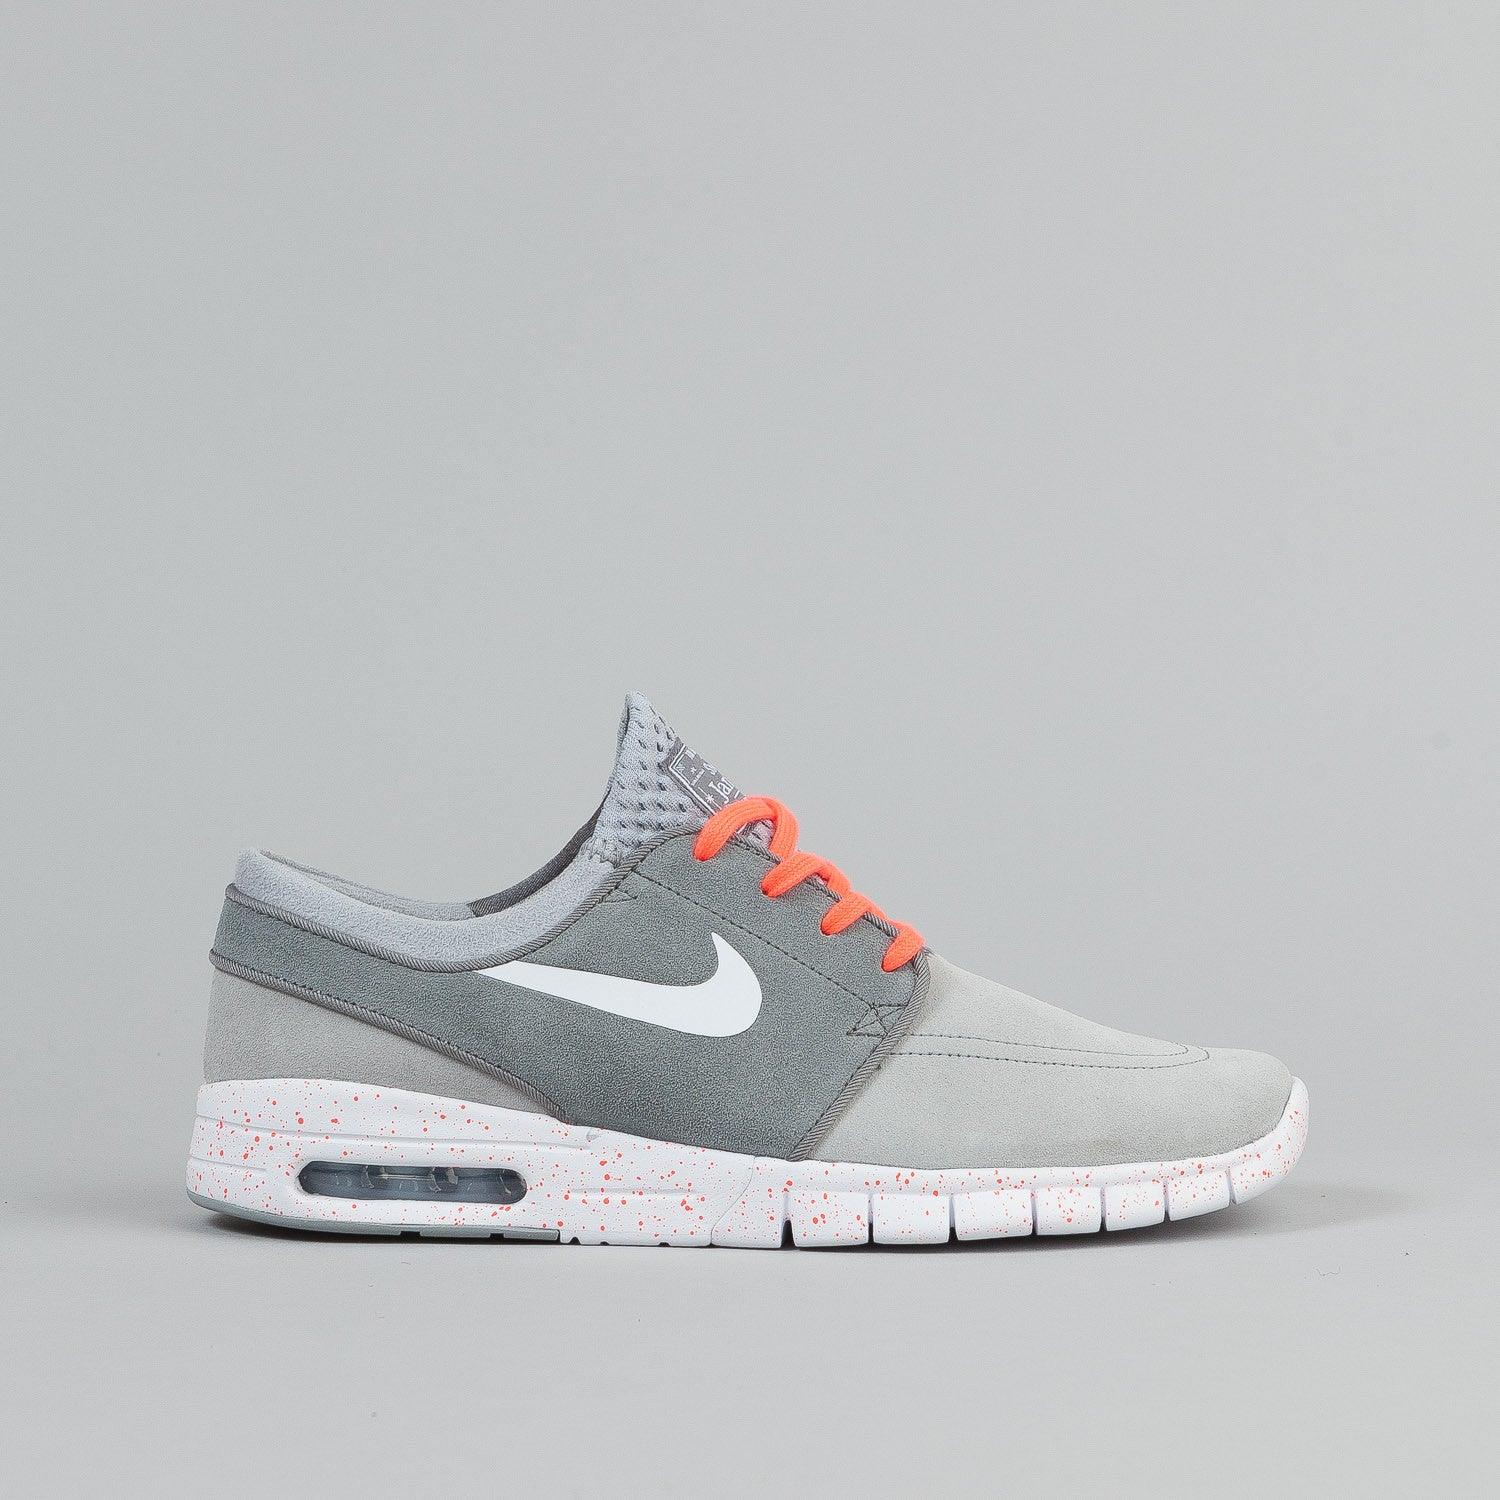 nike sb stefan janoski max suede shoes wolf grey white cool grey flatspot. Black Bedroom Furniture Sets. Home Design Ideas